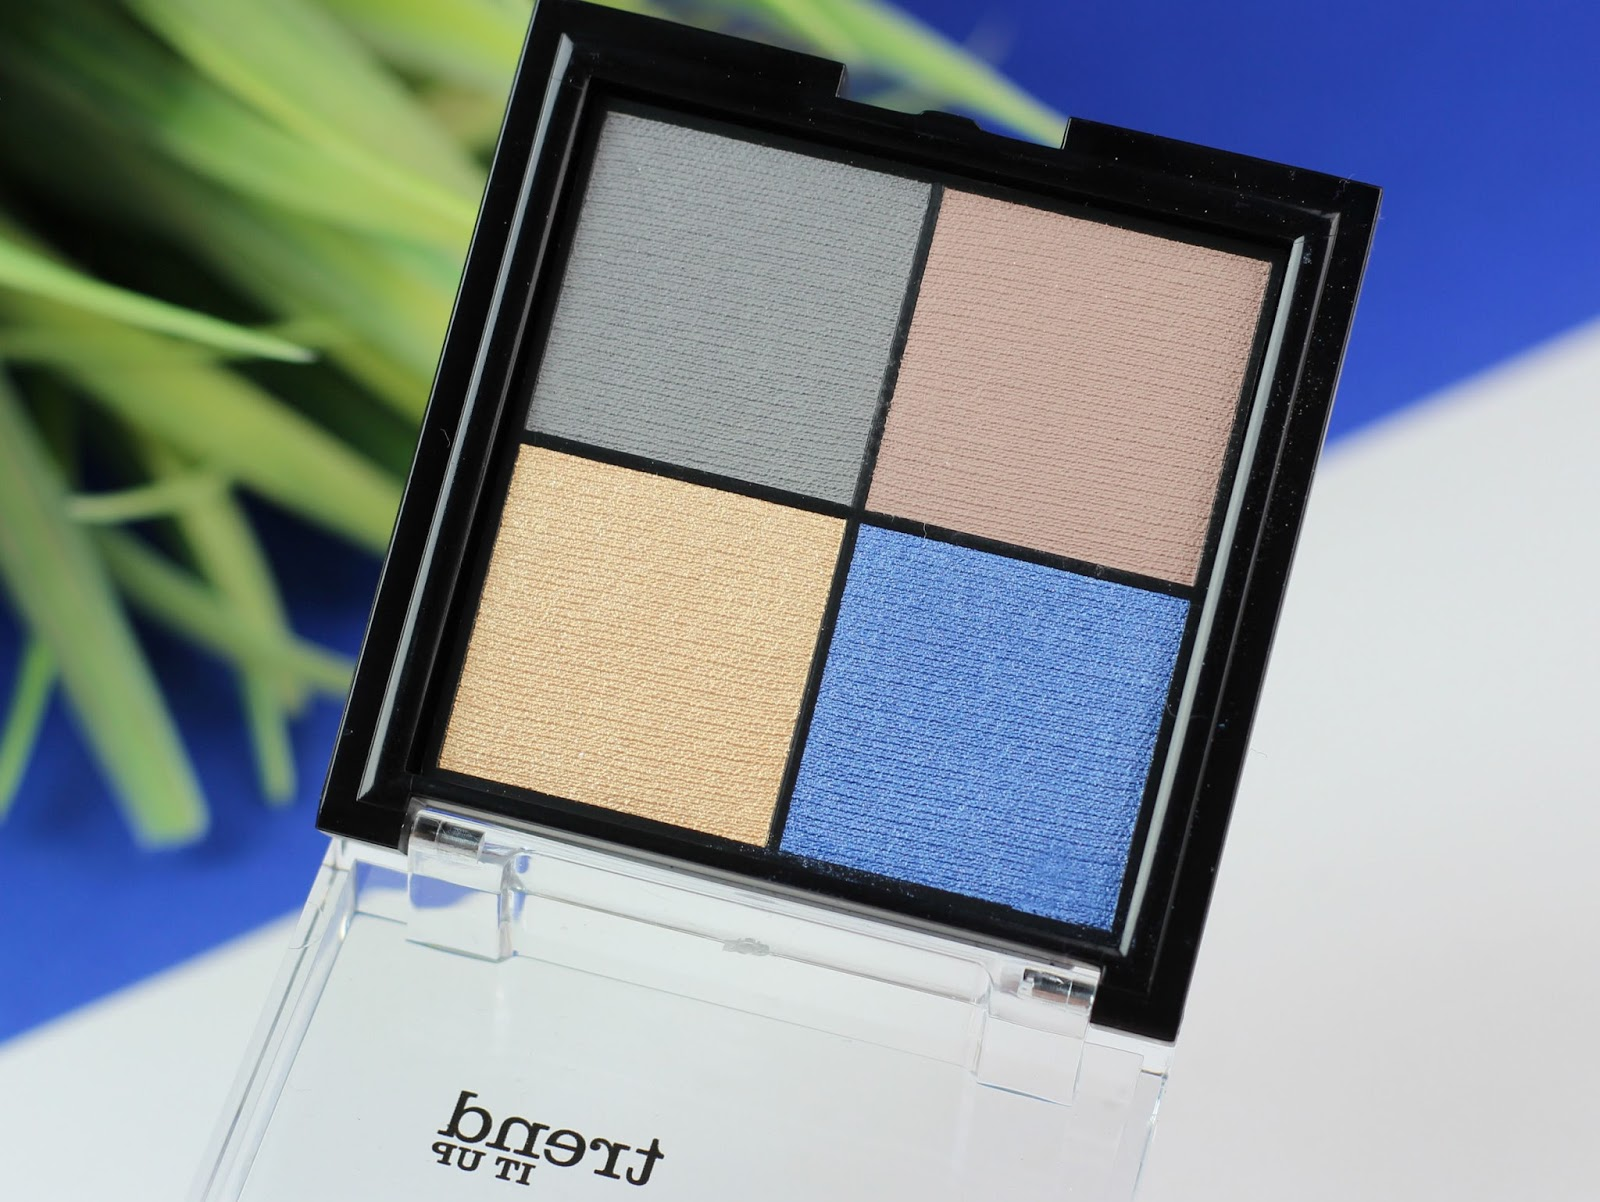 blau, bronzed look, Cool Breeze, dm drogerie markt, highlighter, limited edition, lippenstift, look, nagellack, palette, review, rouge, Strobing Blush, Strobing Powder, swatches, tiu, tragebilder, trend it up,